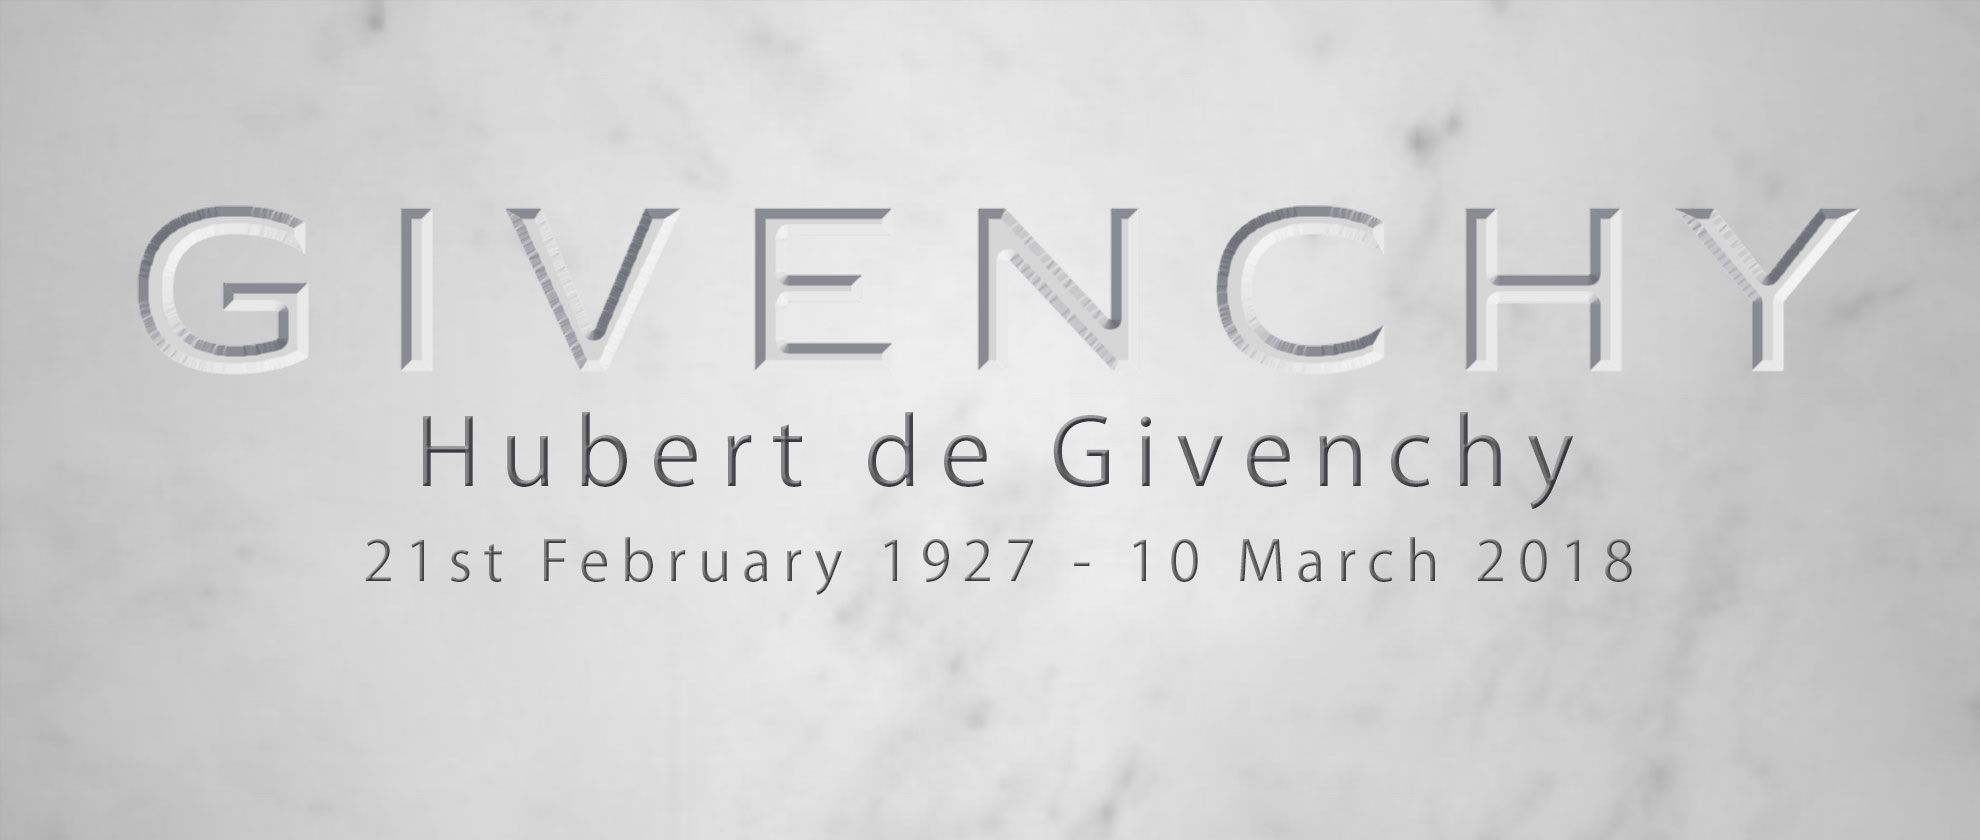 The Founder of Fashion House Givenchy has died